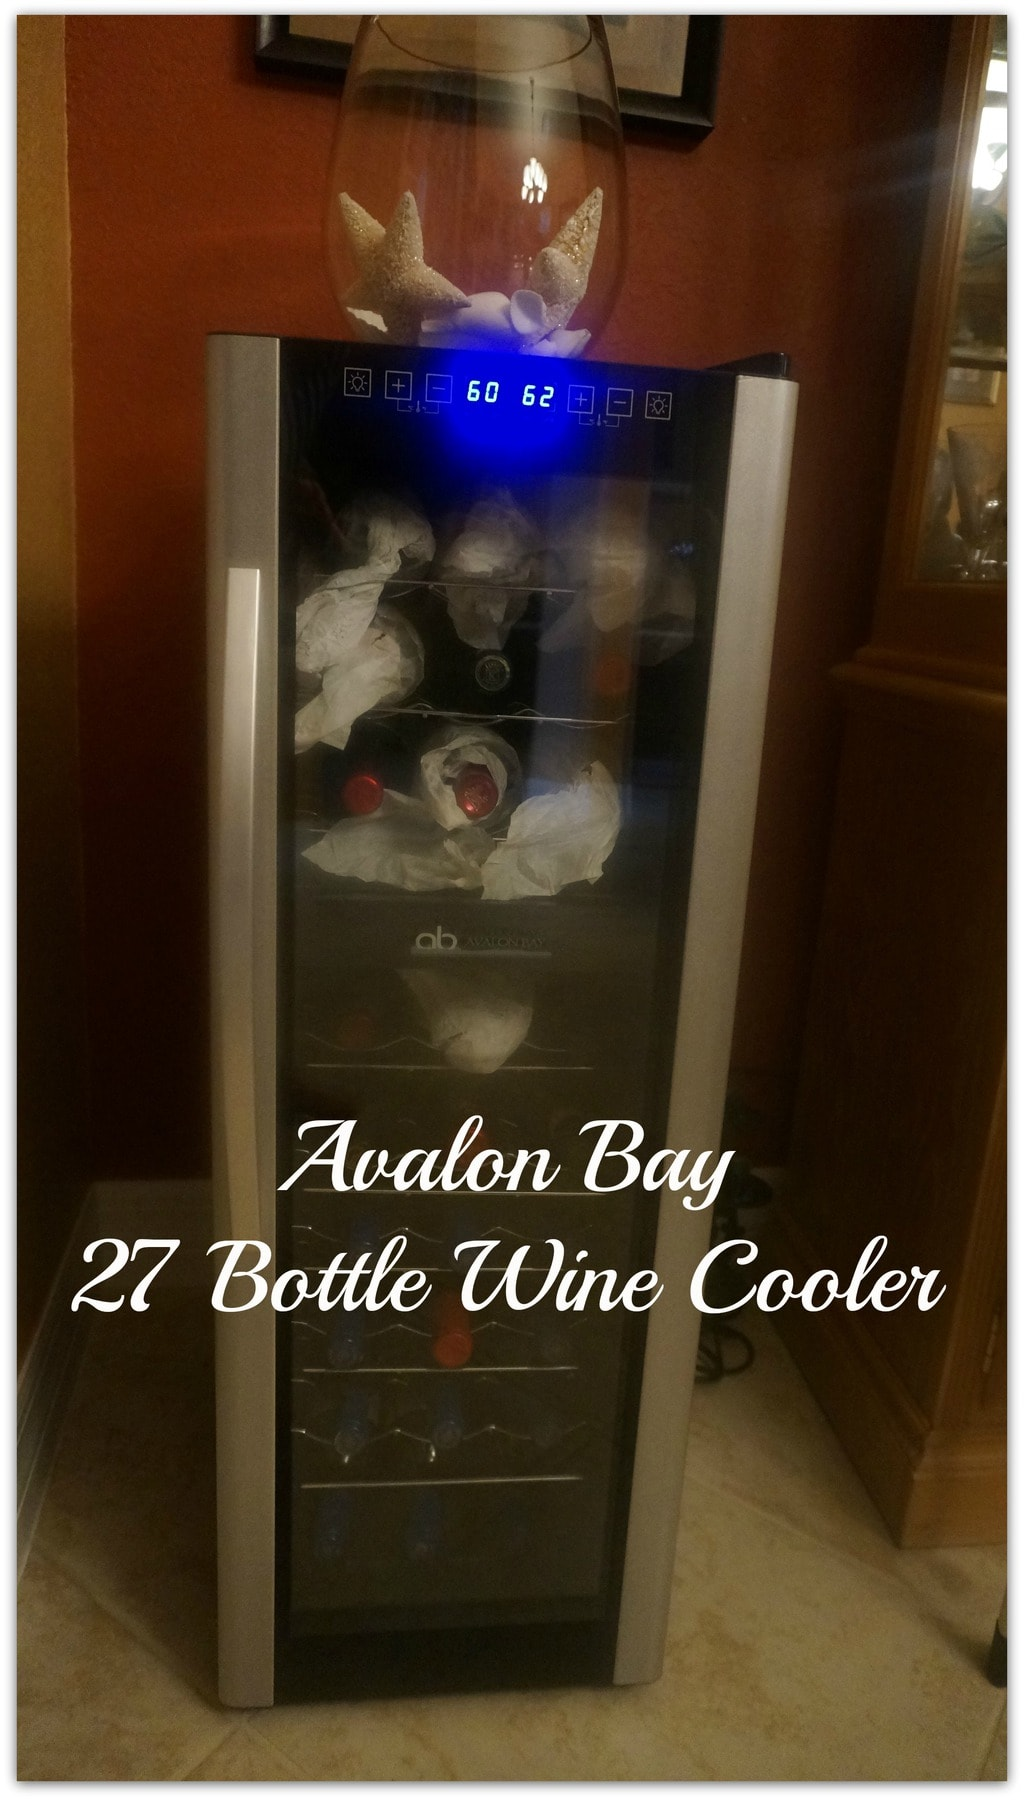 Avalon Bay wine cooler